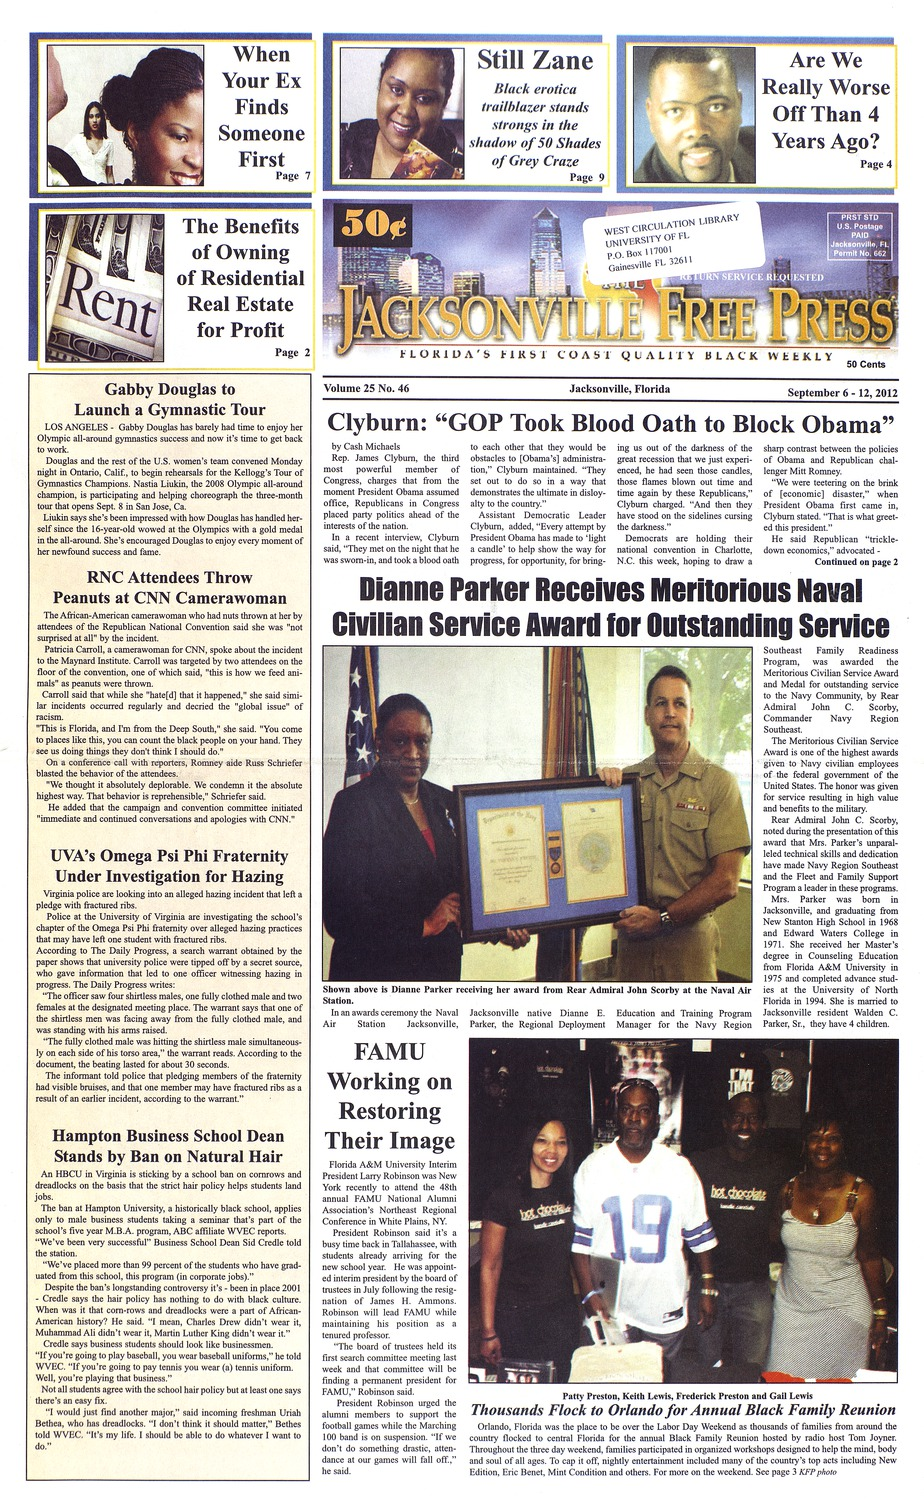 The Jacksonville free press ( March 1, 2012 )